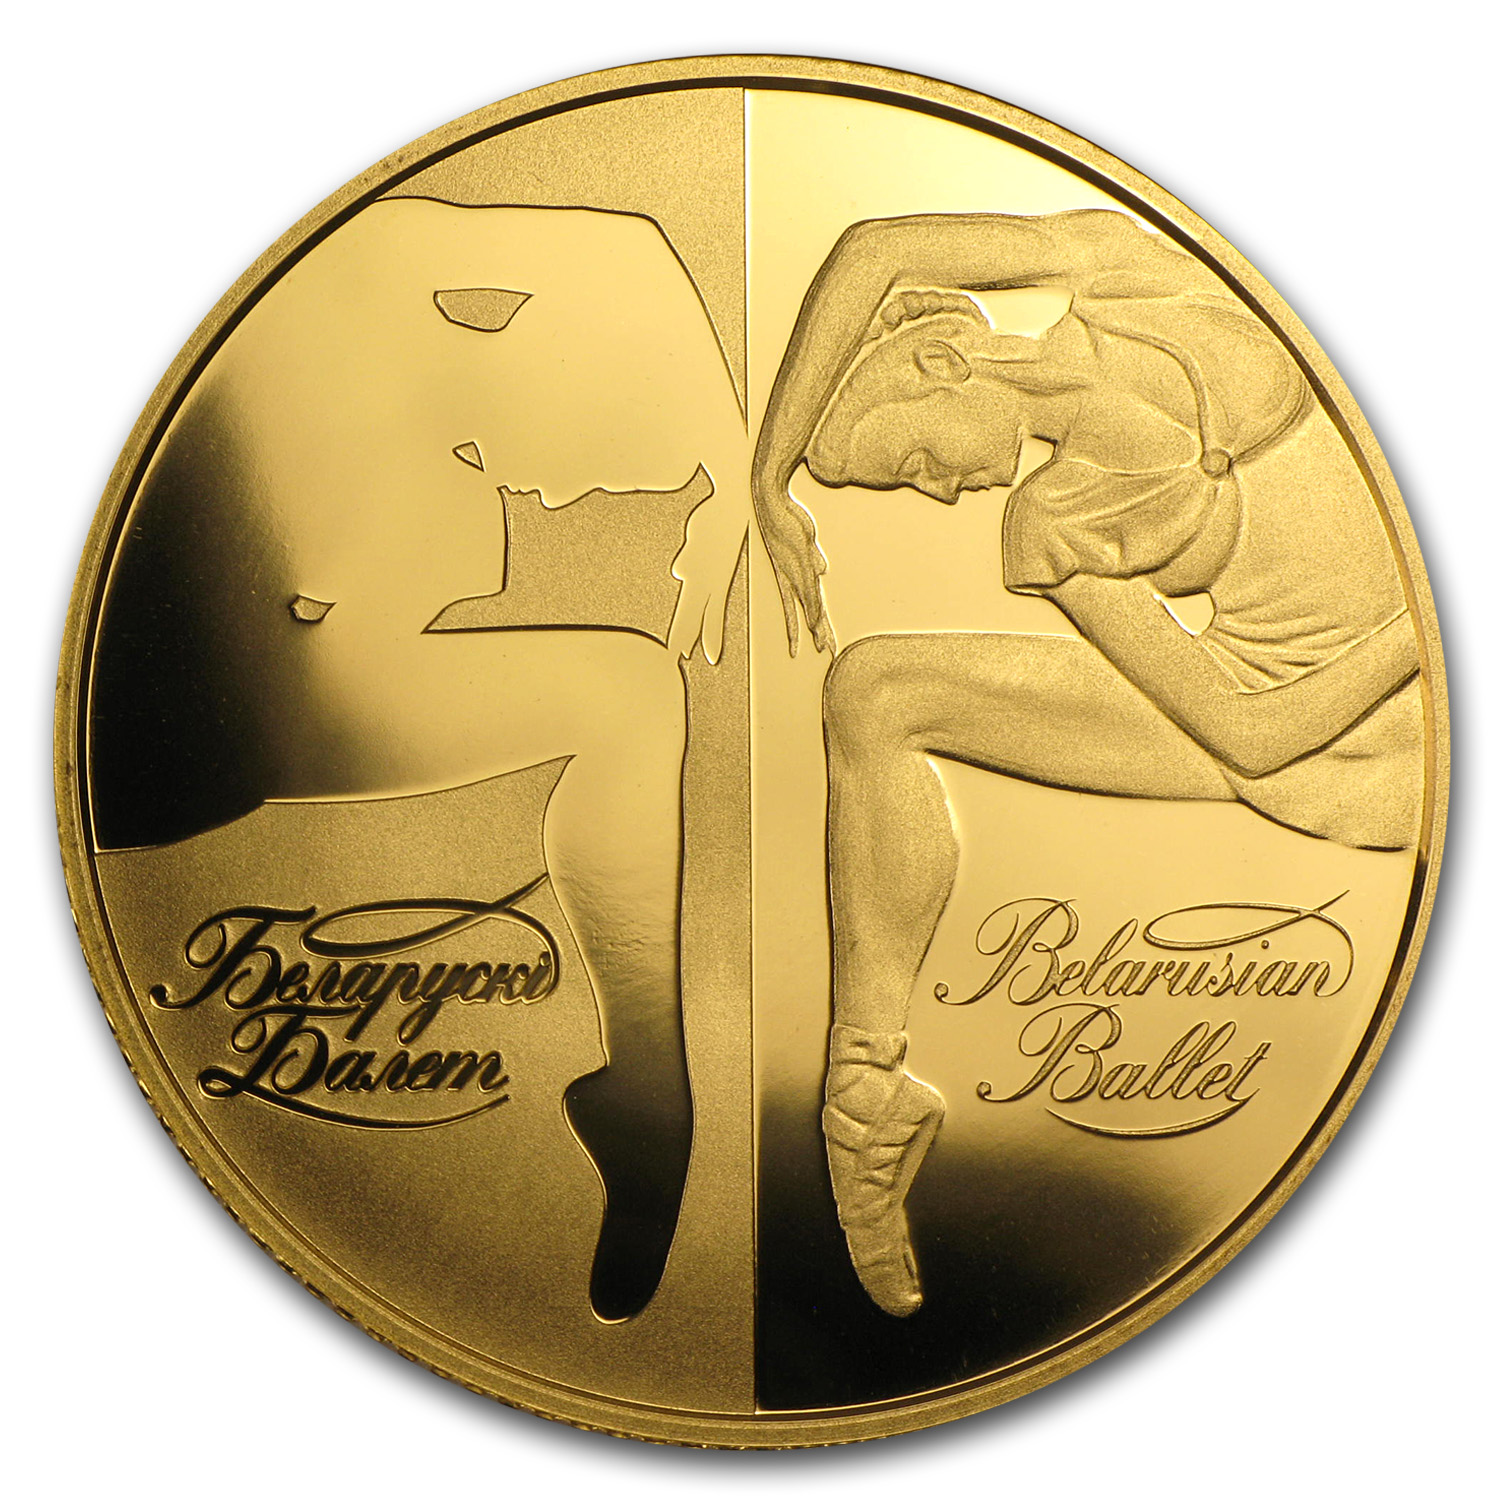 Belarus Gold 200 Rouble Ballerina Proof